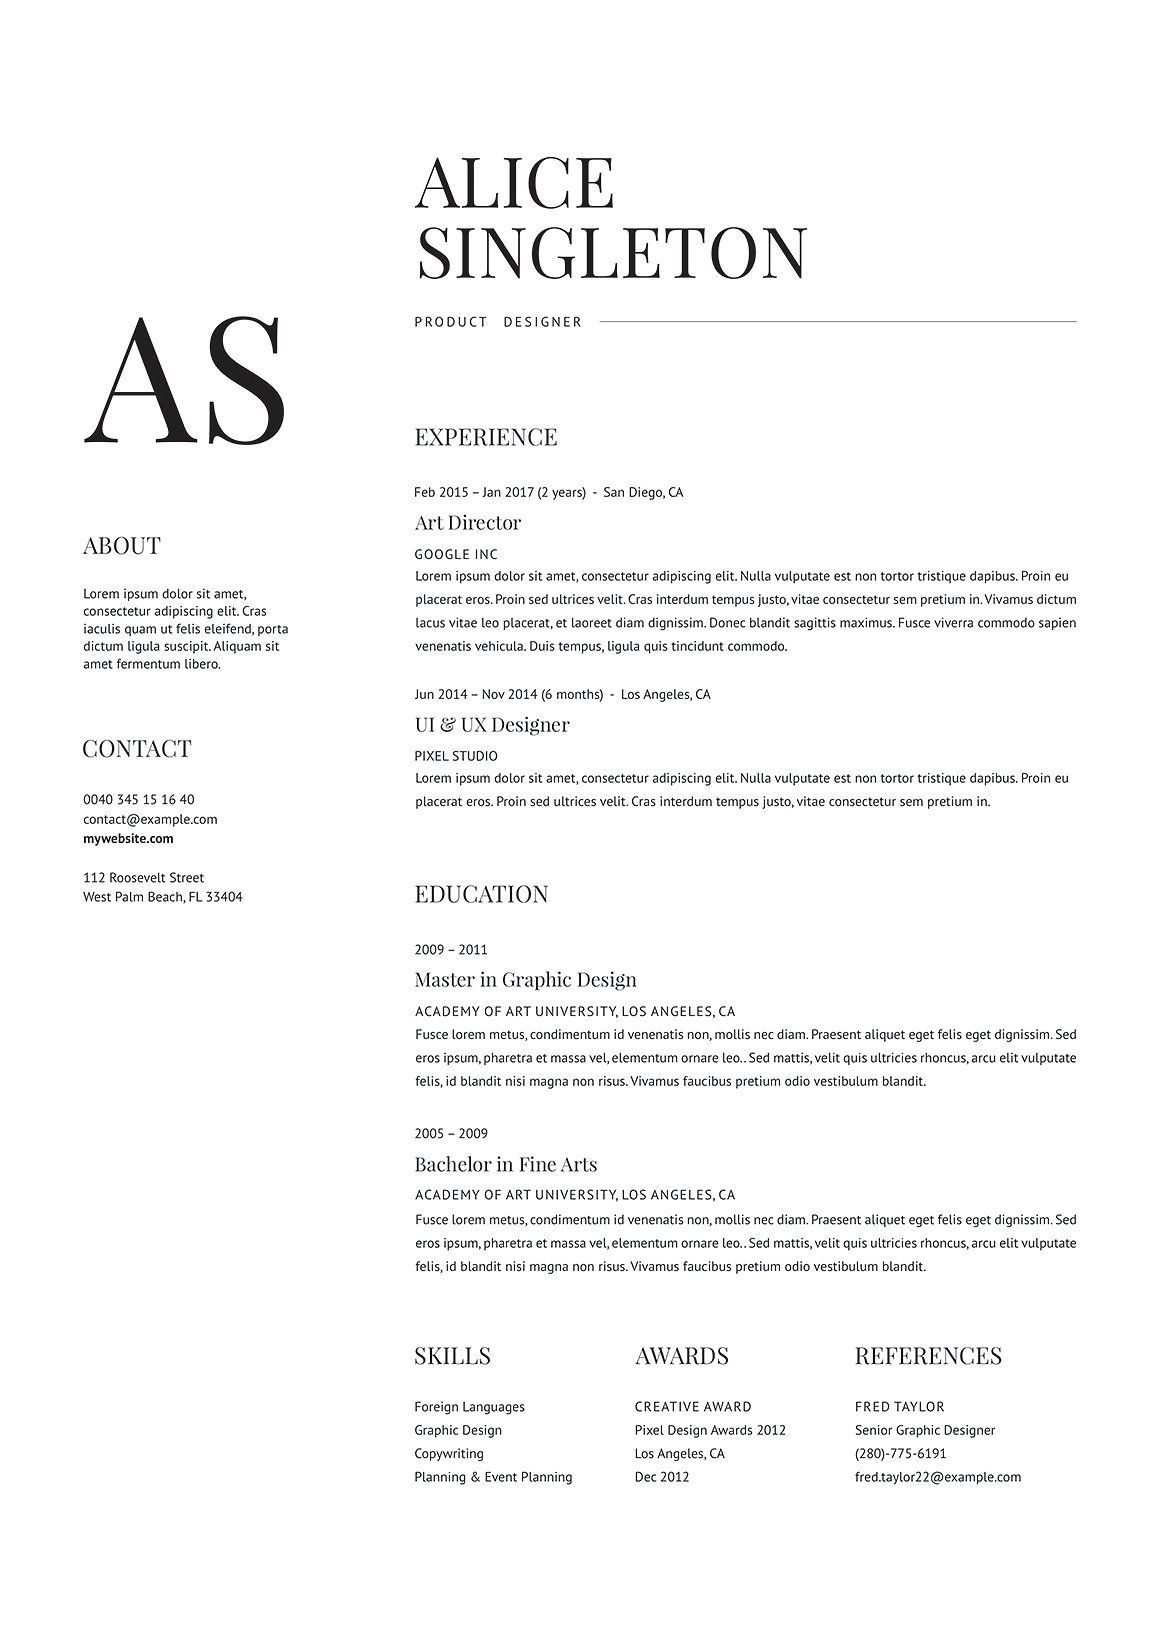 a classy  minimalist resume template with unique  readable fonts  available in word  photoshop